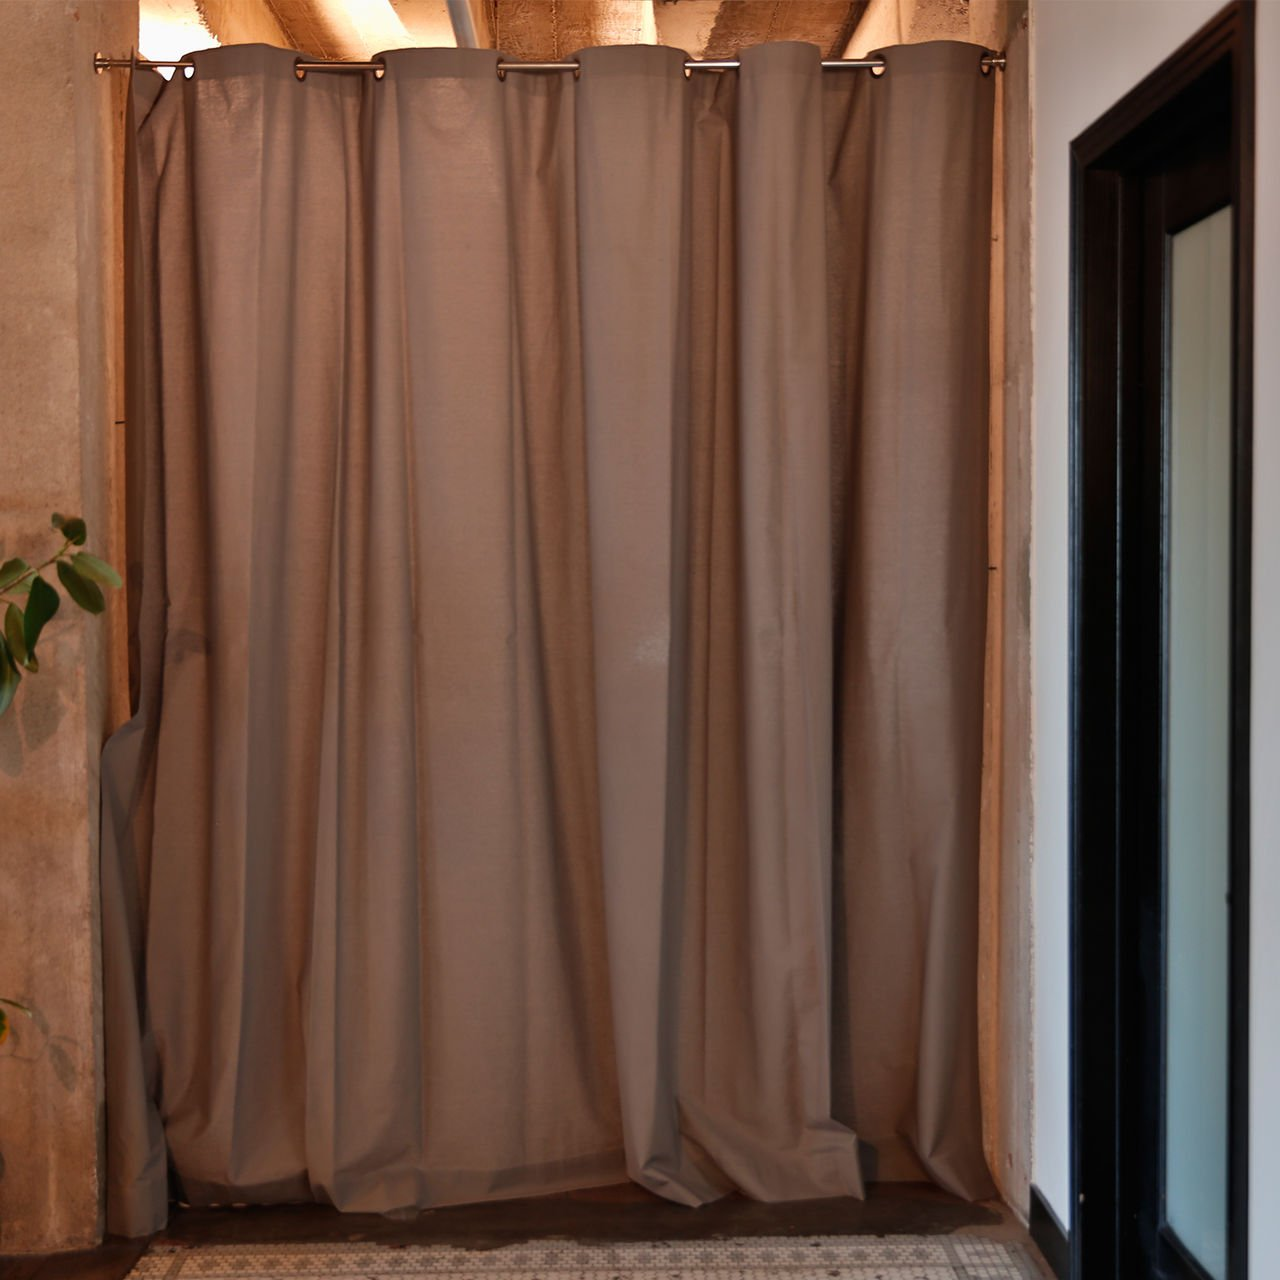 Amazon.com: RoomDividersNow Muslin Room Divider Curtain, 8ft Tall x 15ft  Wide (Gray): Kitchen & Dining - Amazon.com: RoomDividersNow Muslin Room Divider Curtain, 8ft Tall